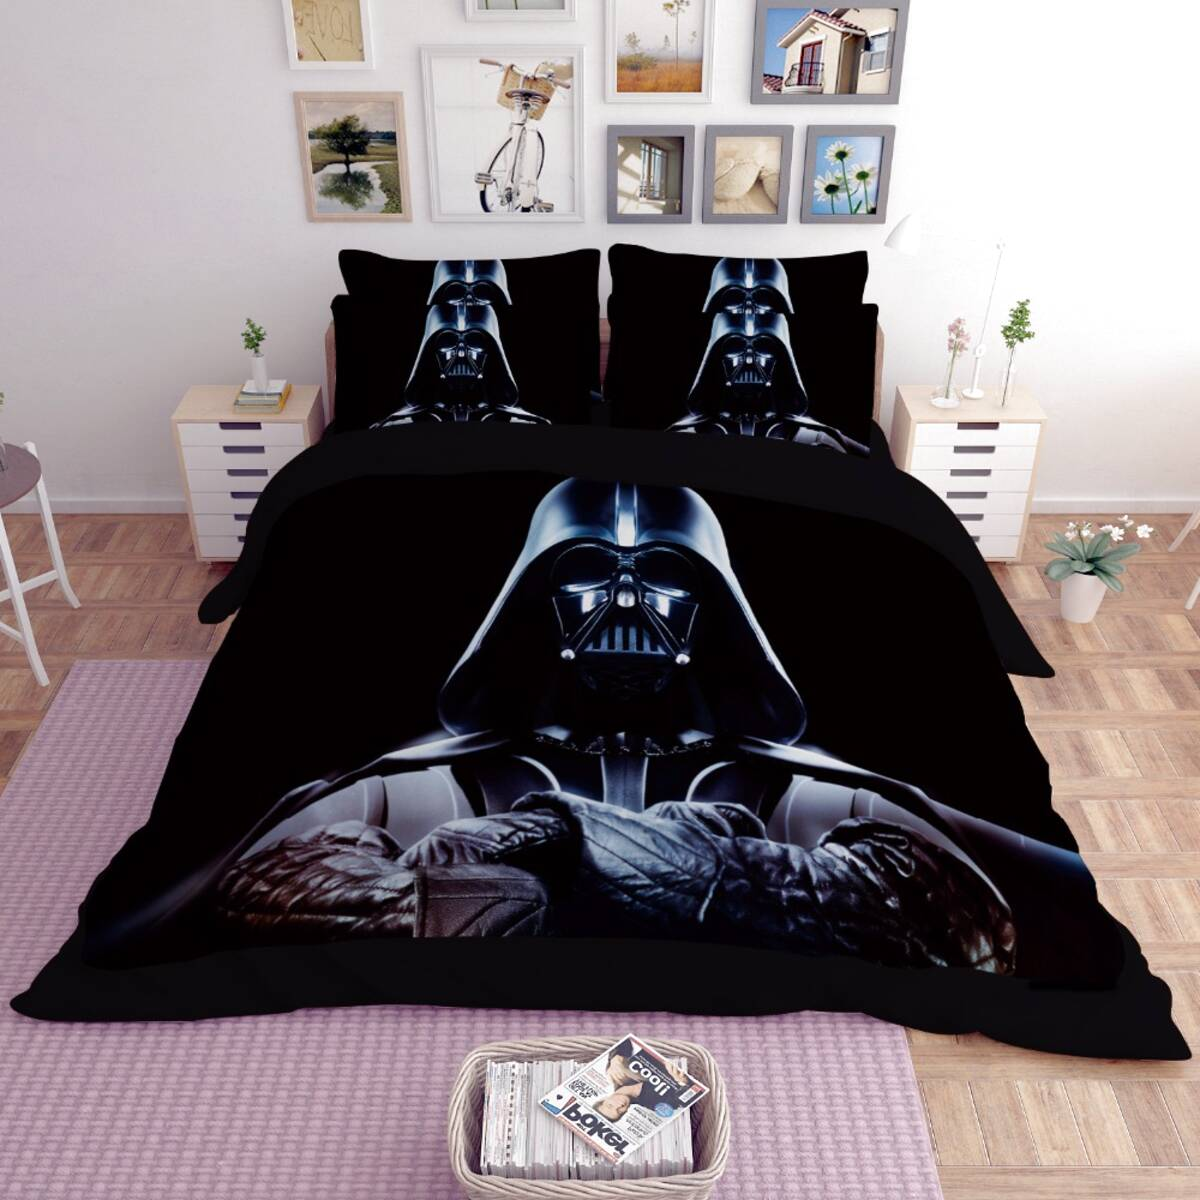 couette star wars d'occasion